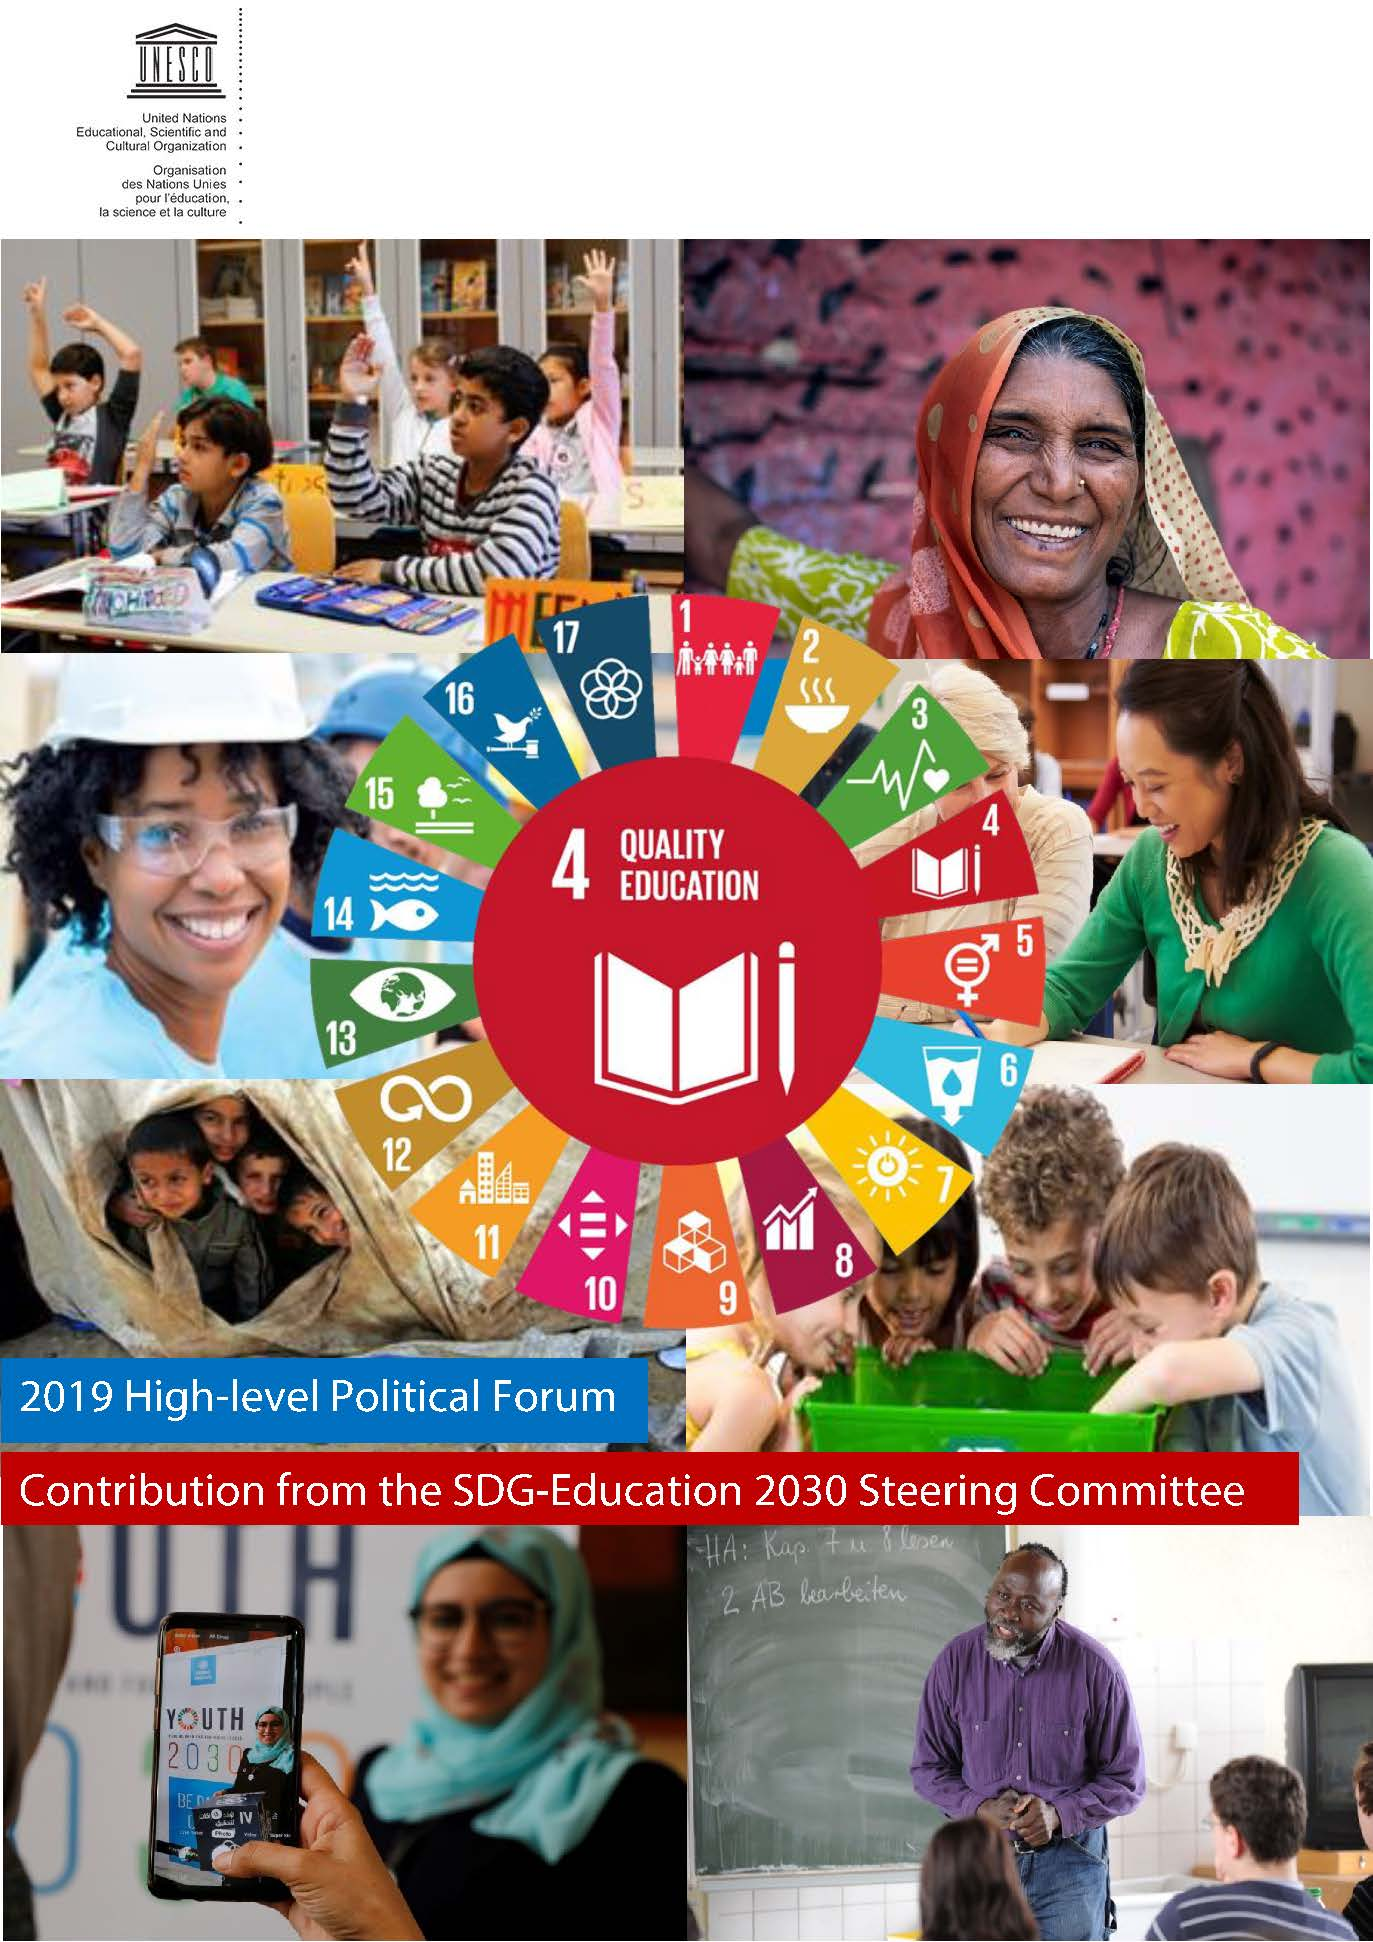 2019 High-level Political Forum Contribution from the SDG-Education 2030 Steering Committee (SDG-Education 2030 SC, March 2019)